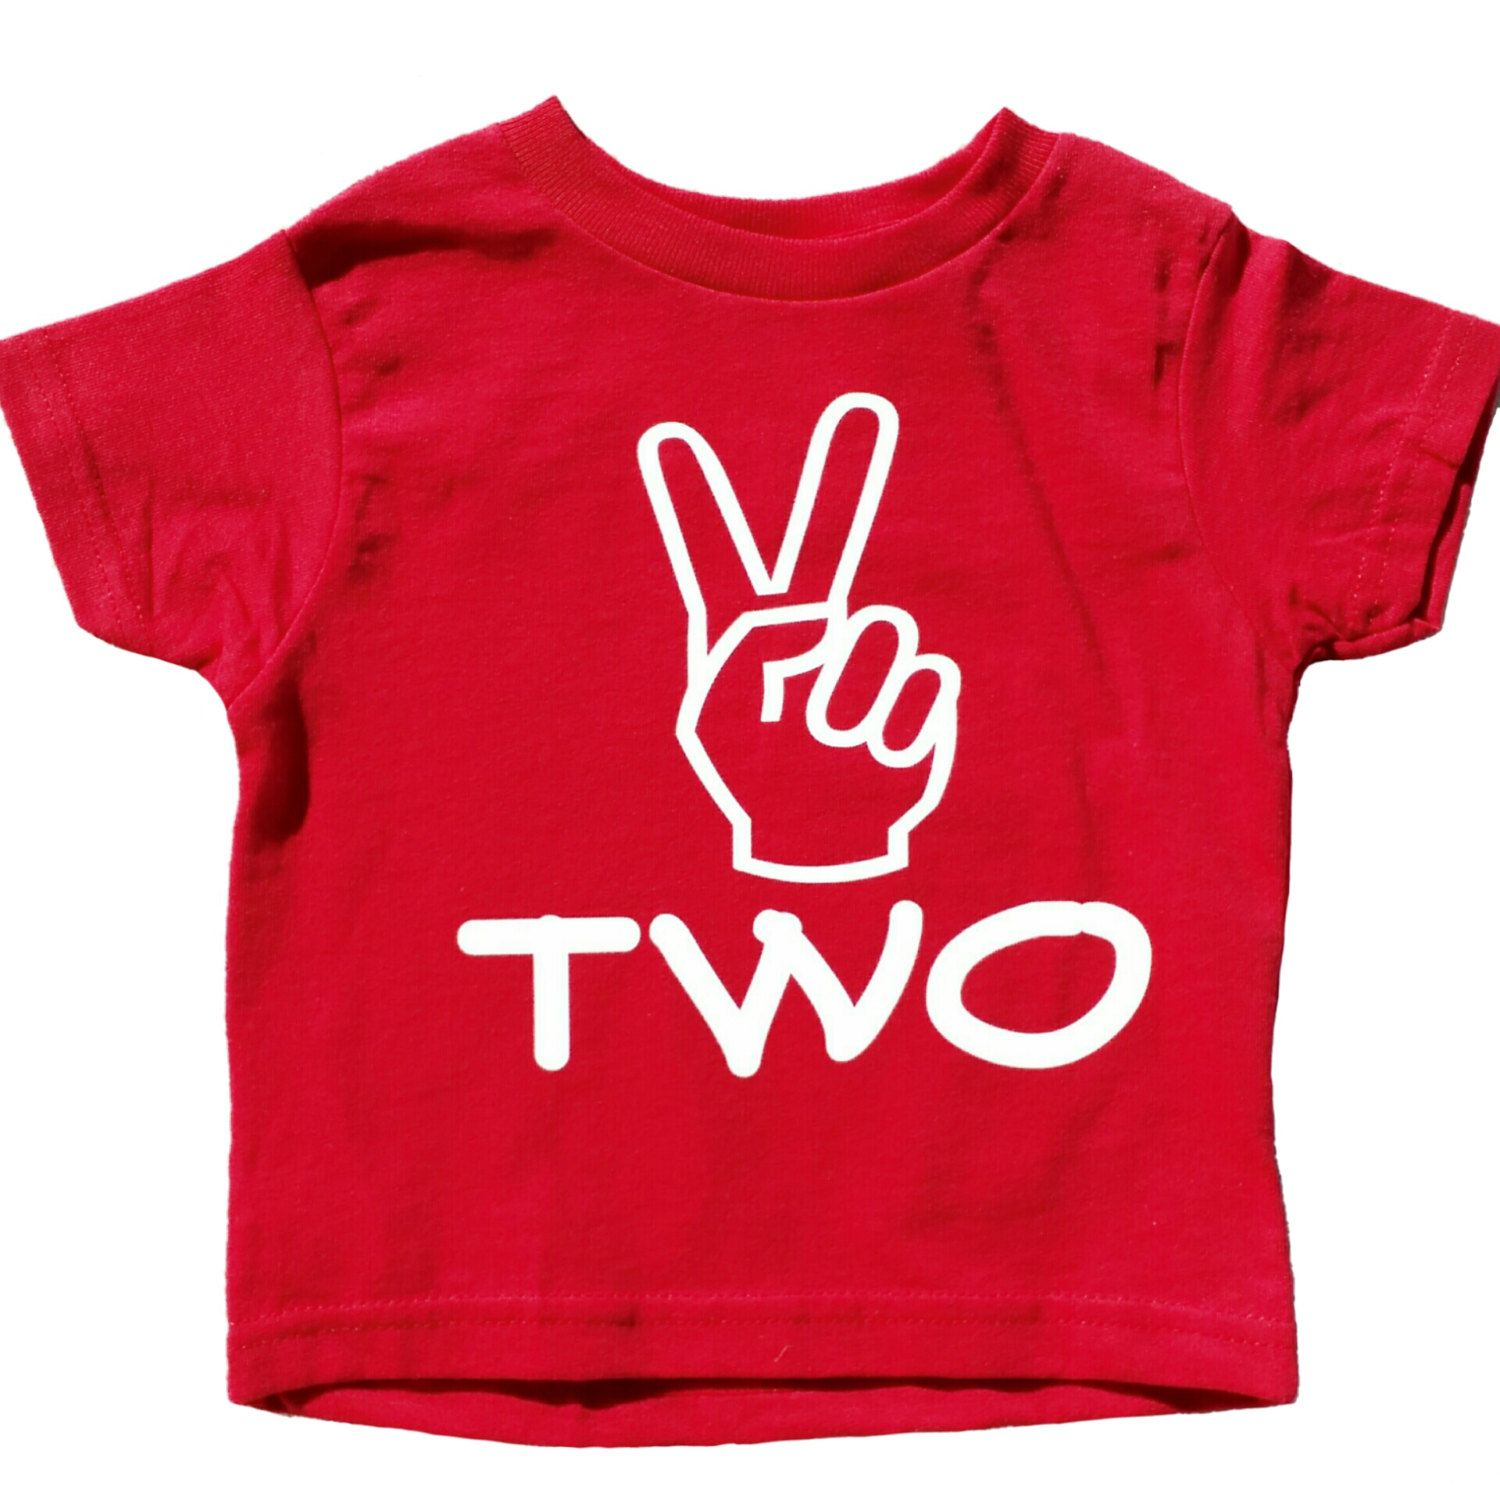 Gender Neutral Two Years Old Birthday Party Shirt Outfit 2nd Bday Second Tee For Girls Or Boys Toddler Clothing C Liv Co